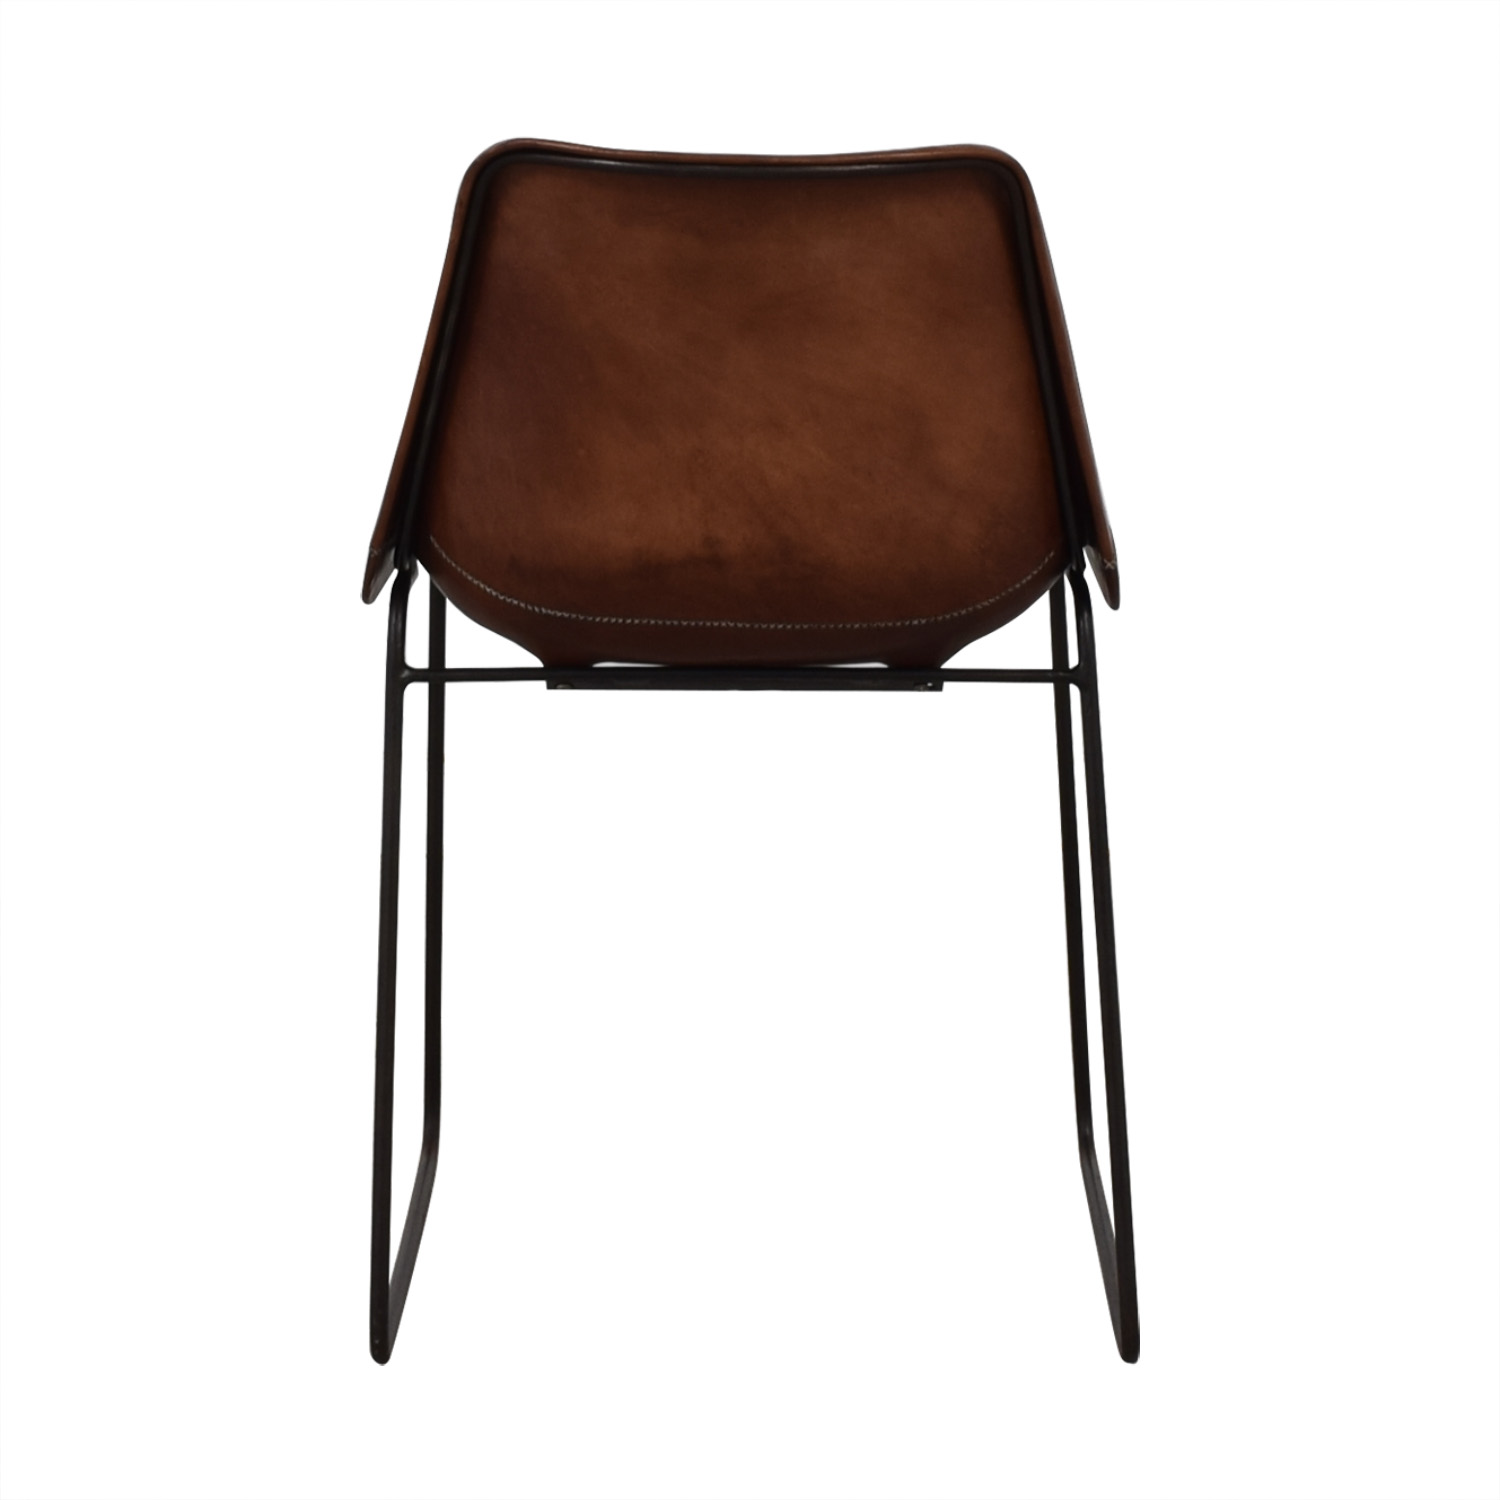 buy ABC Carpet & Home Giron Brown Leather Chair ABC Carpet & Home Chairs